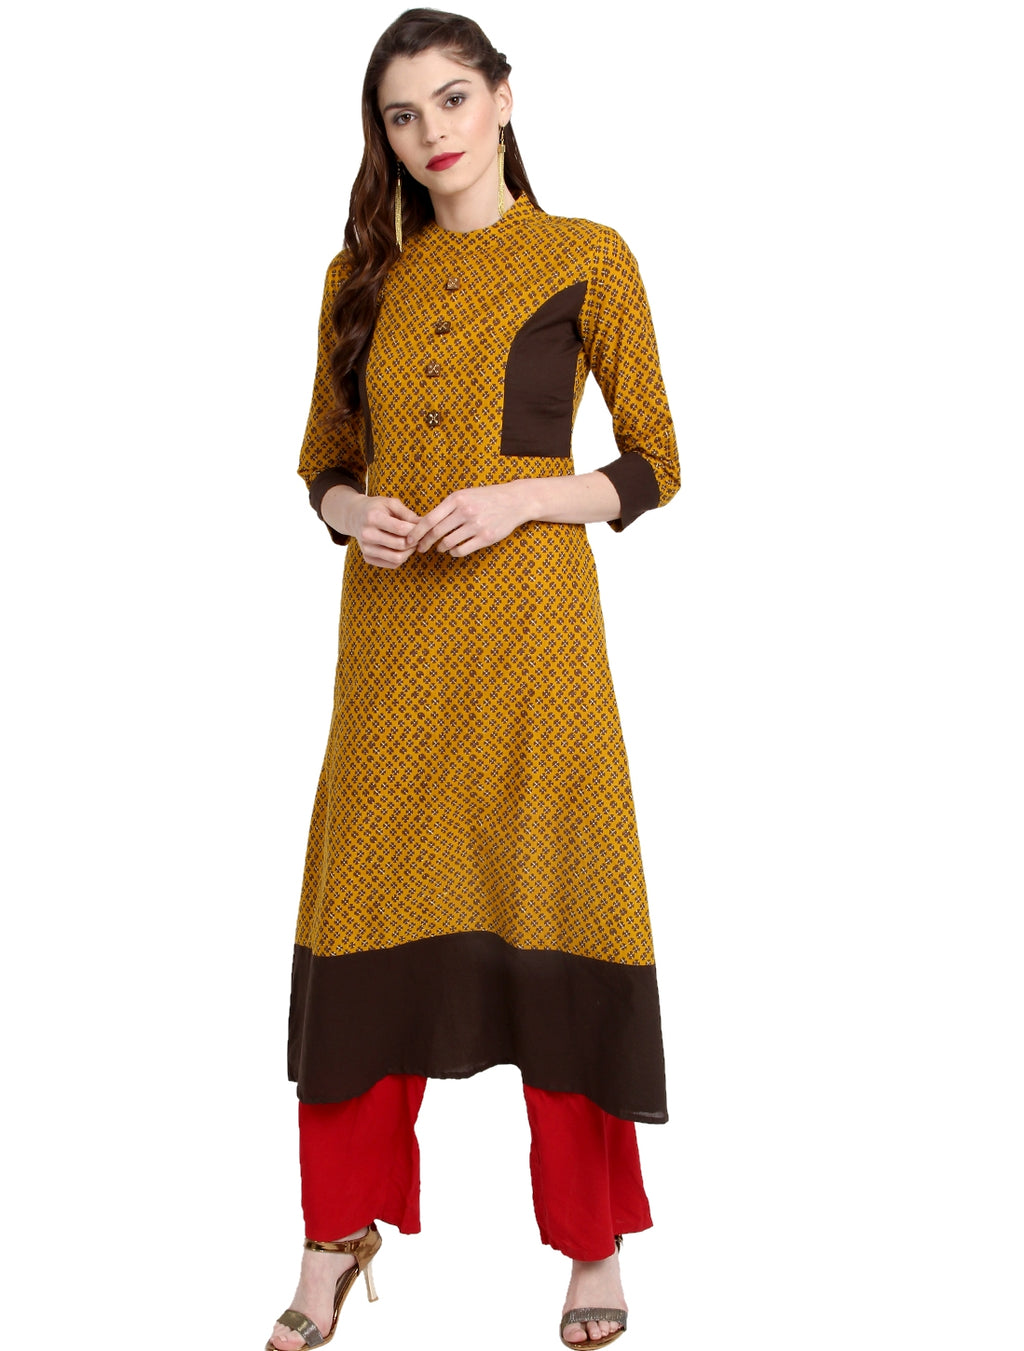 Mustard Yellow Color Cotton Readymade Party Wear Kurtis ( Sizes-36,38,40,42,44) Janasya Catlog SJ-10239